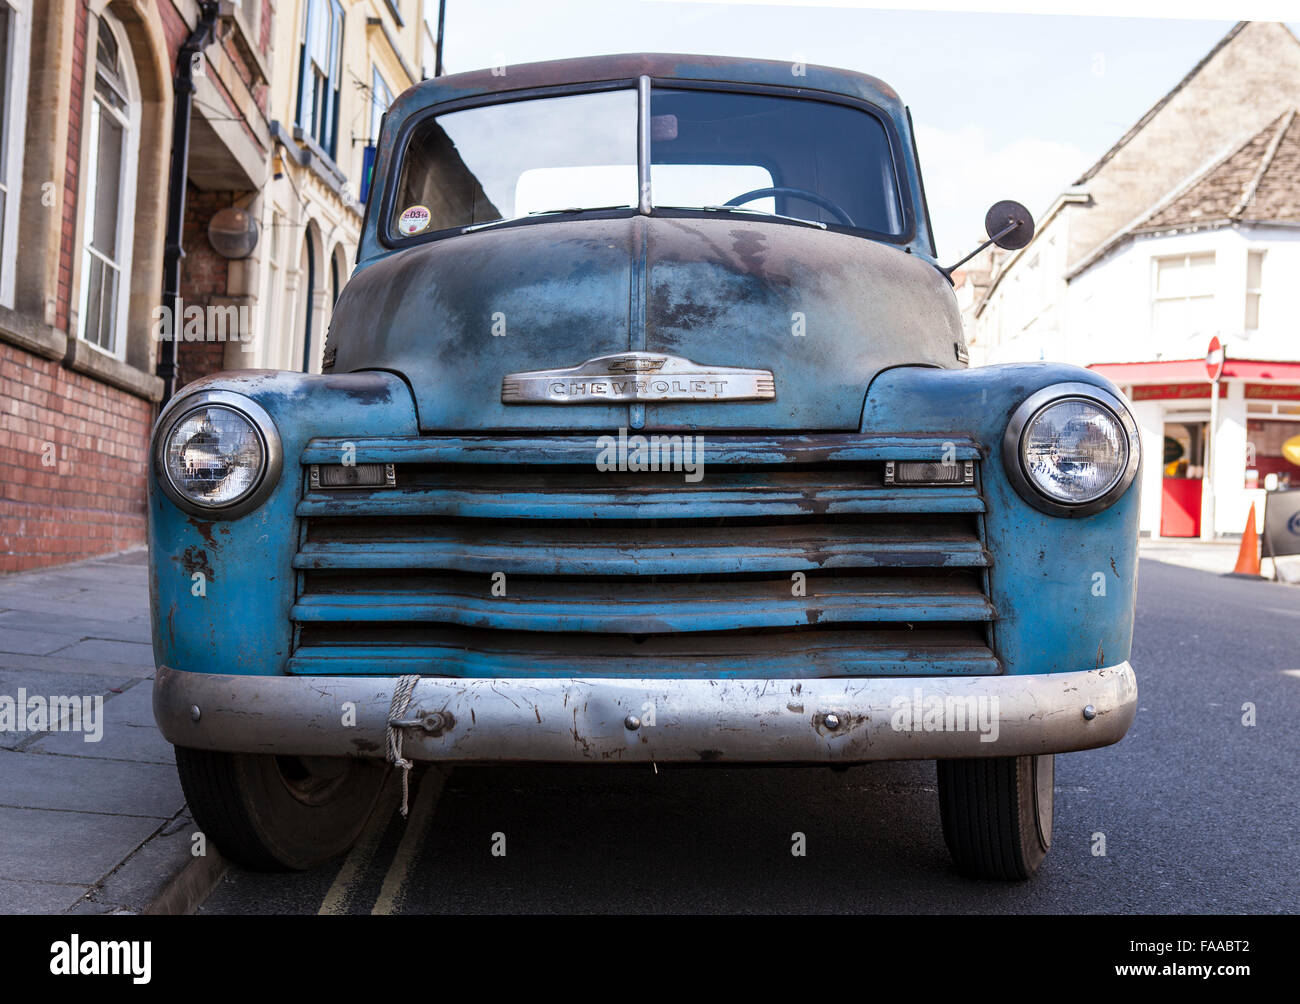 Front View of a Blue 1950 Chevrolet Pickup Truck Stock Photo